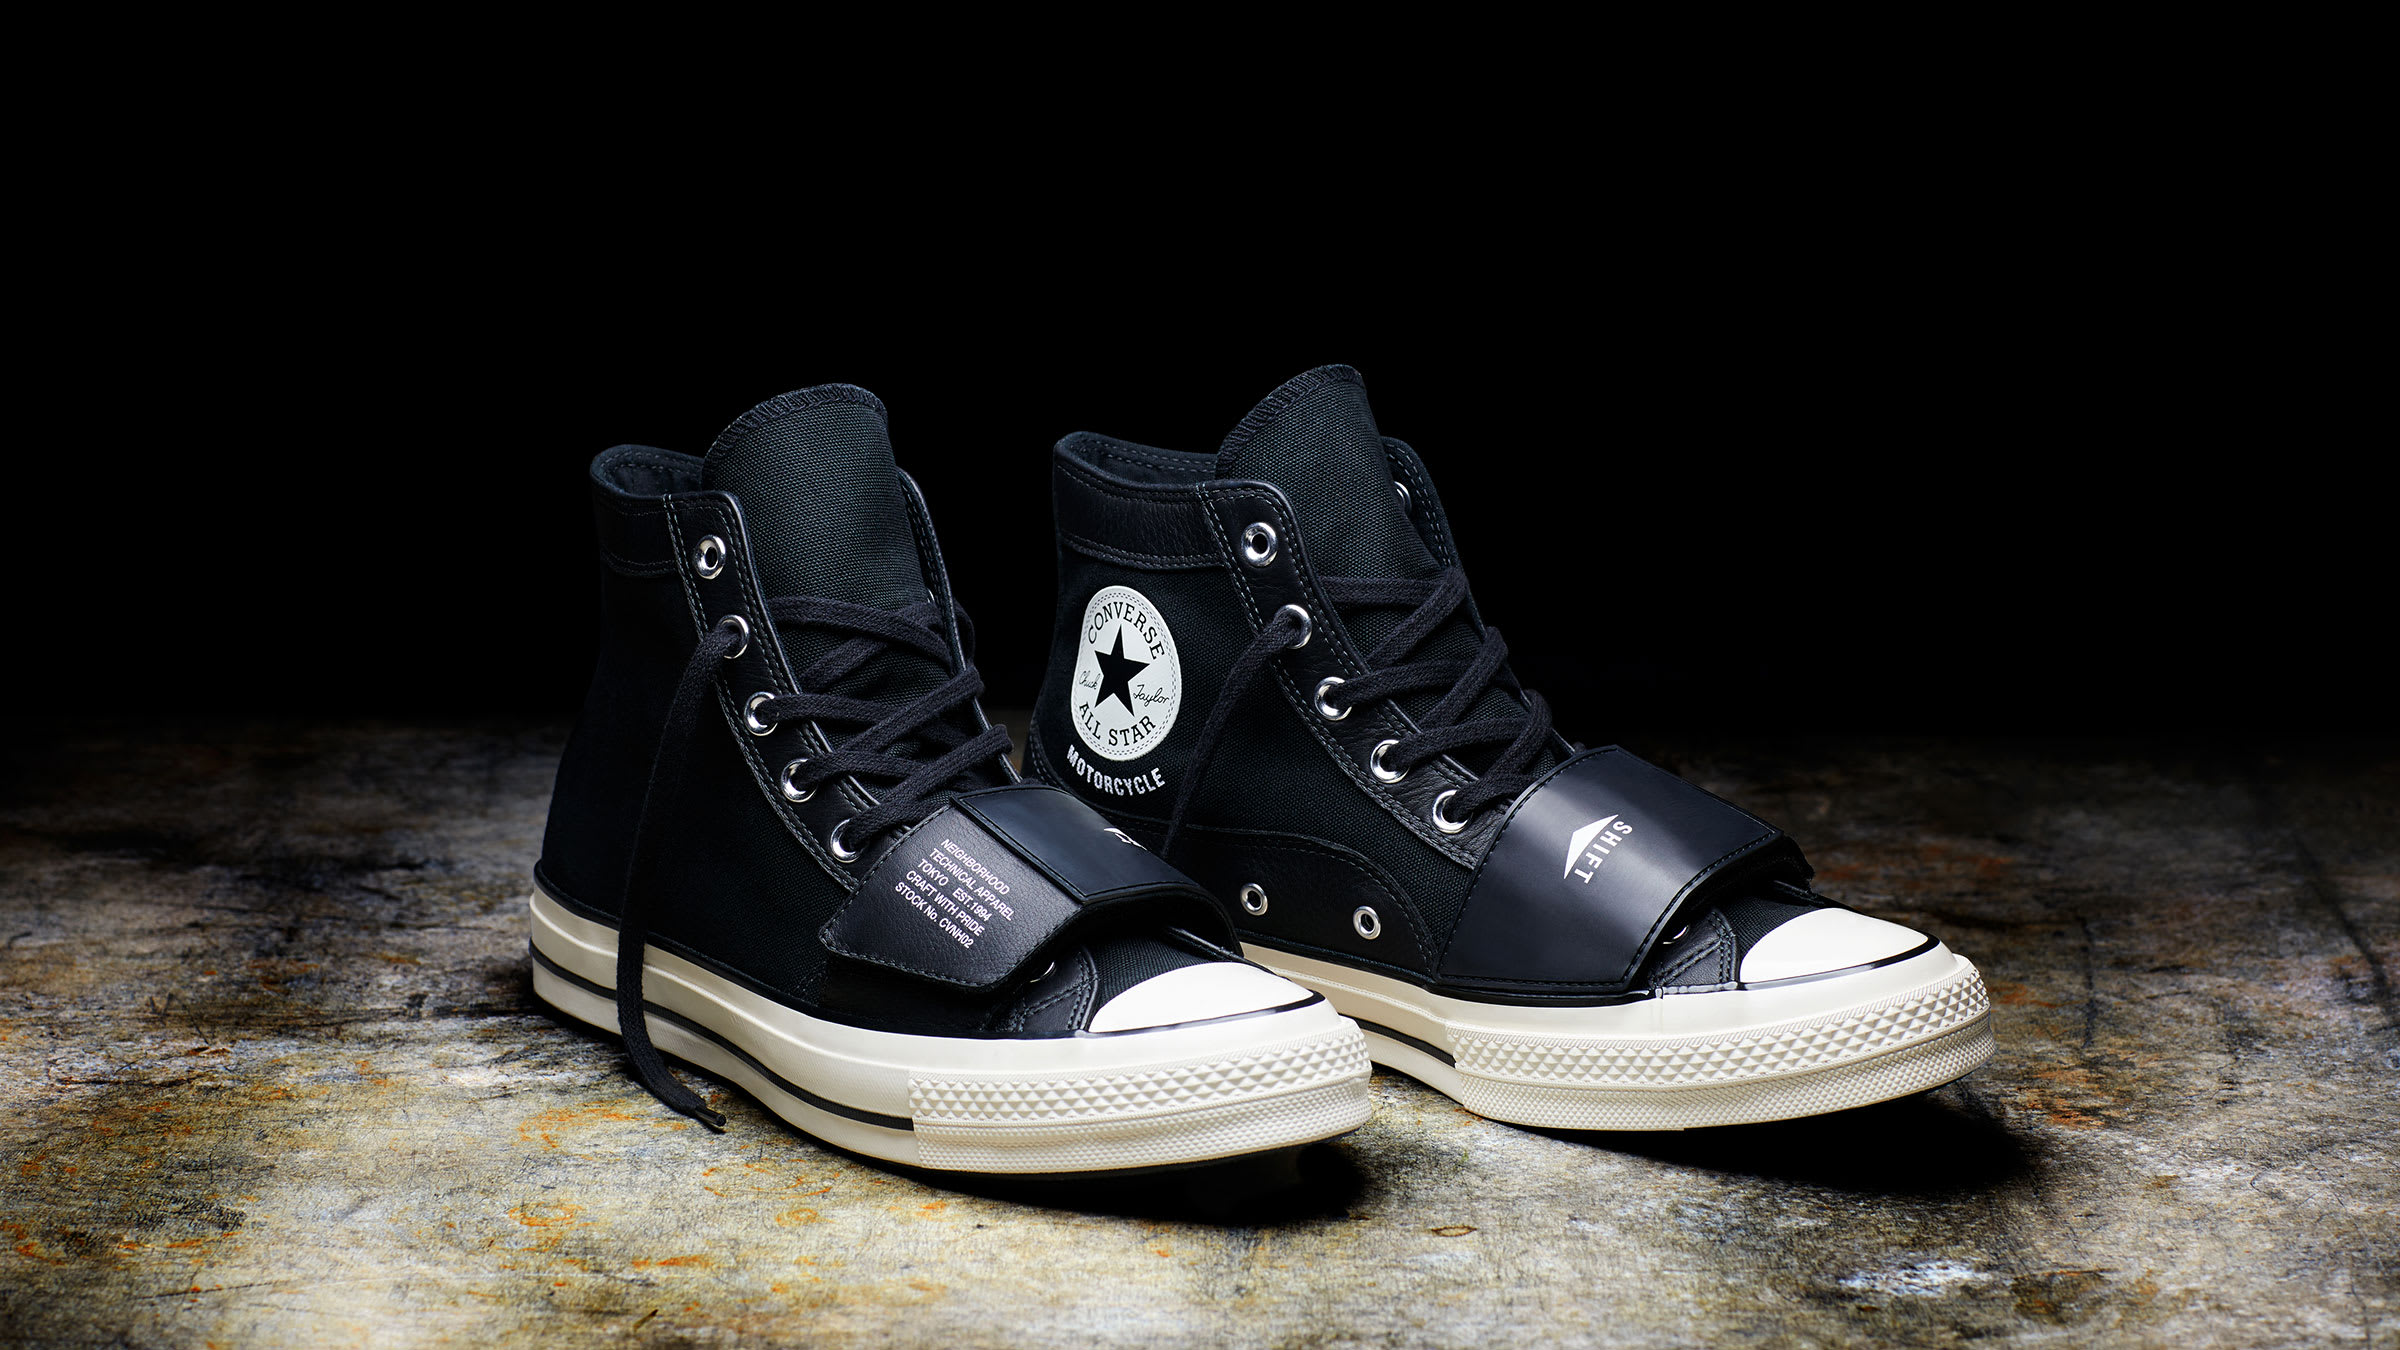 Converse x Neighborhood Chuck Taylor 70's